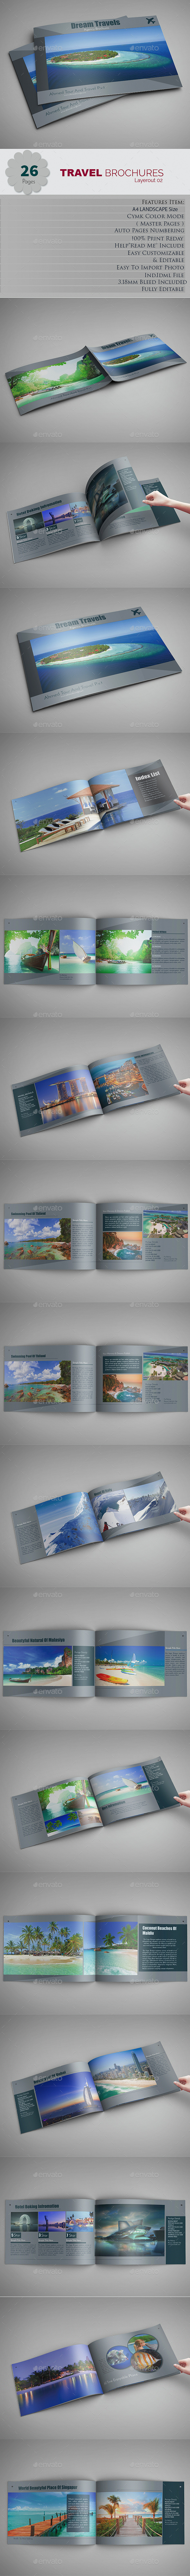 Travel Brochures Layerout 2 - Brochures Print Templates